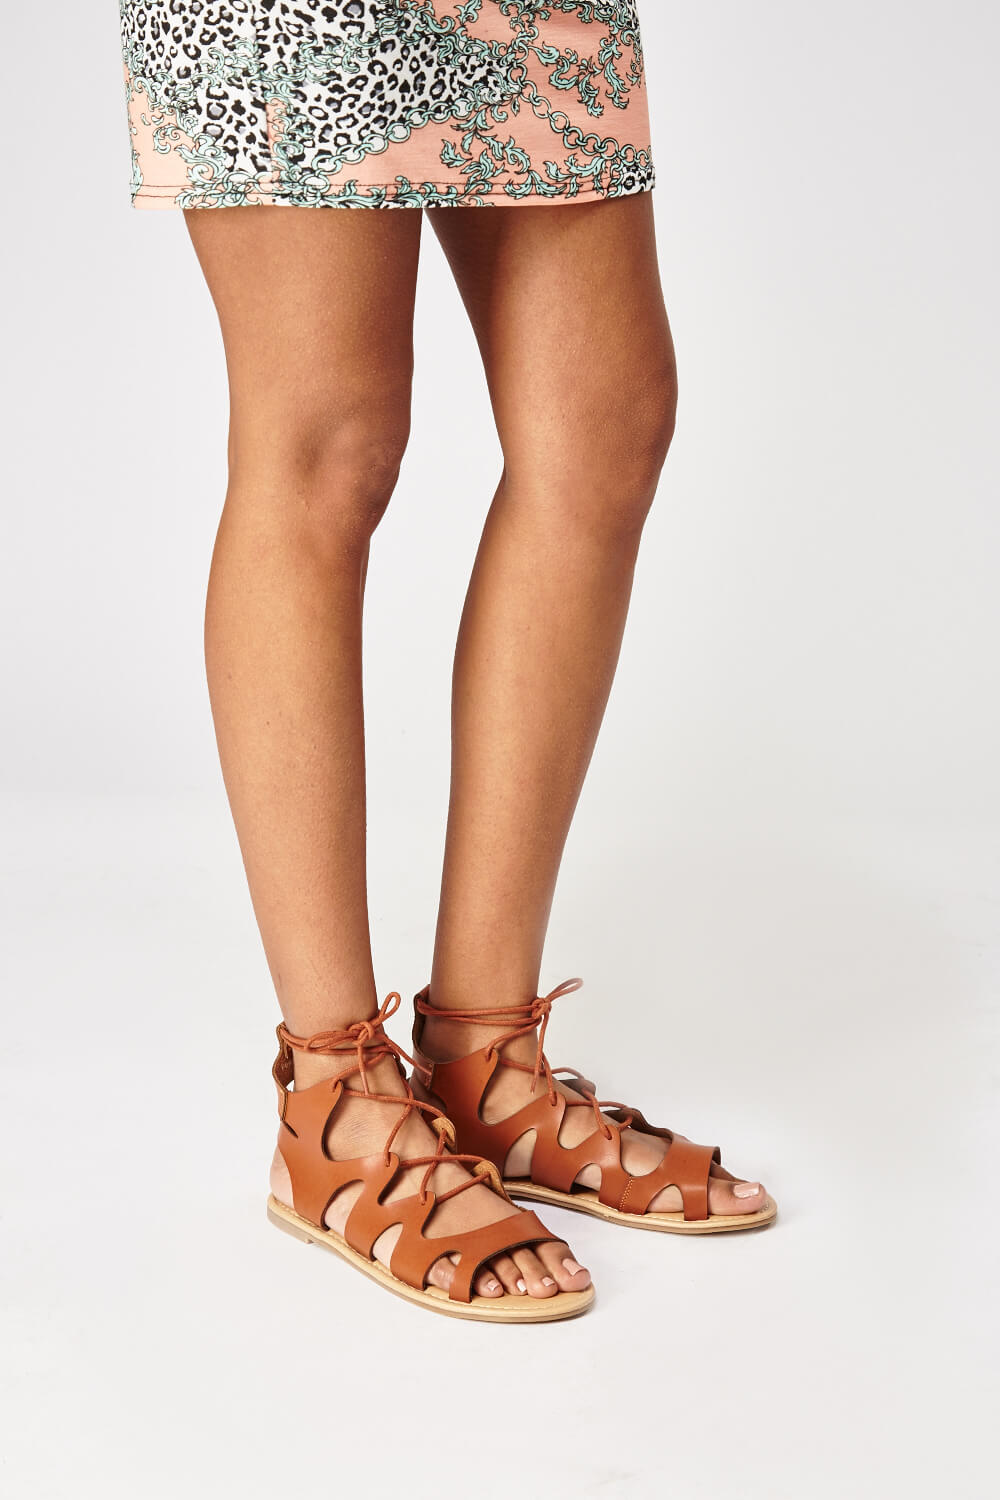 cut out lace up women's sandals tan